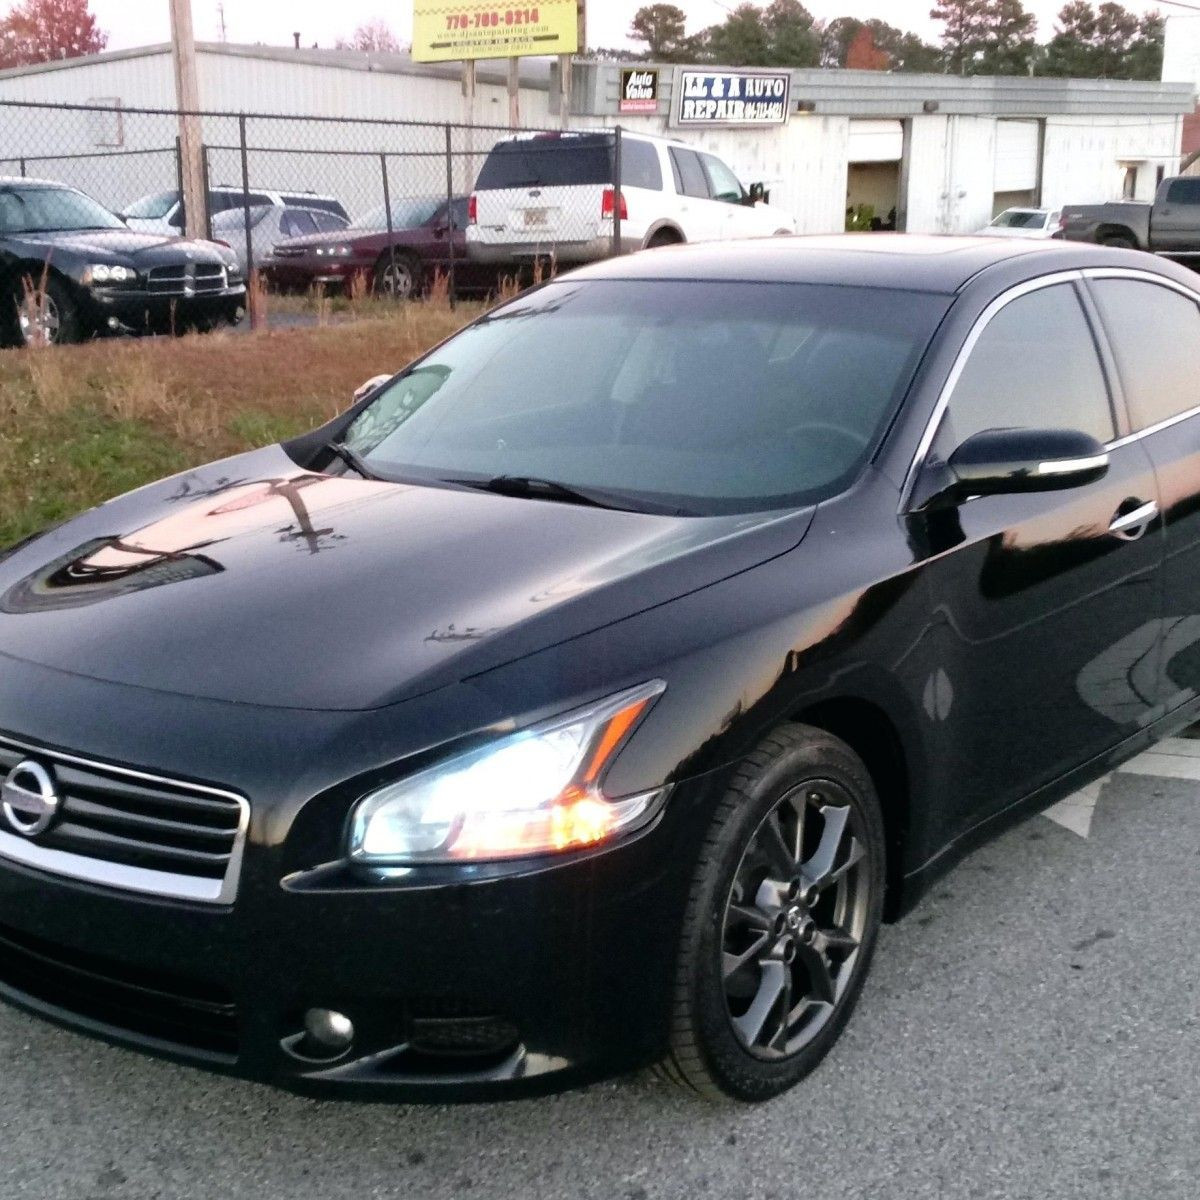 Cars for Sale Near Me 1000 or Less Luxury Beautiful Used Cars for Sale 1000 or Less Near Me- Encouraged for ...